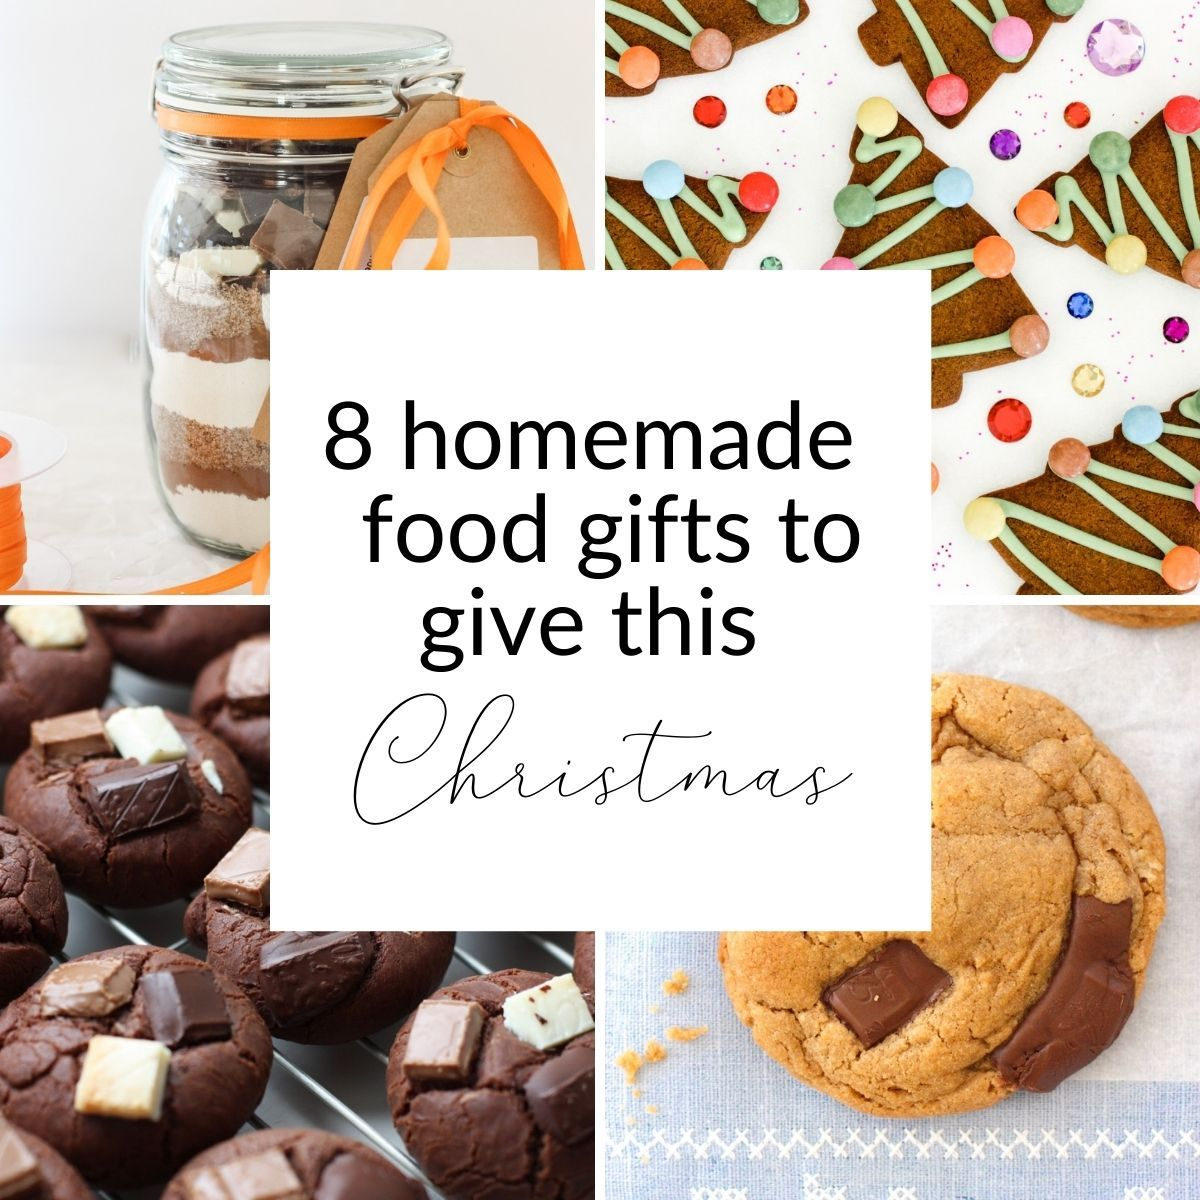 Homemade Food Gifts cover image